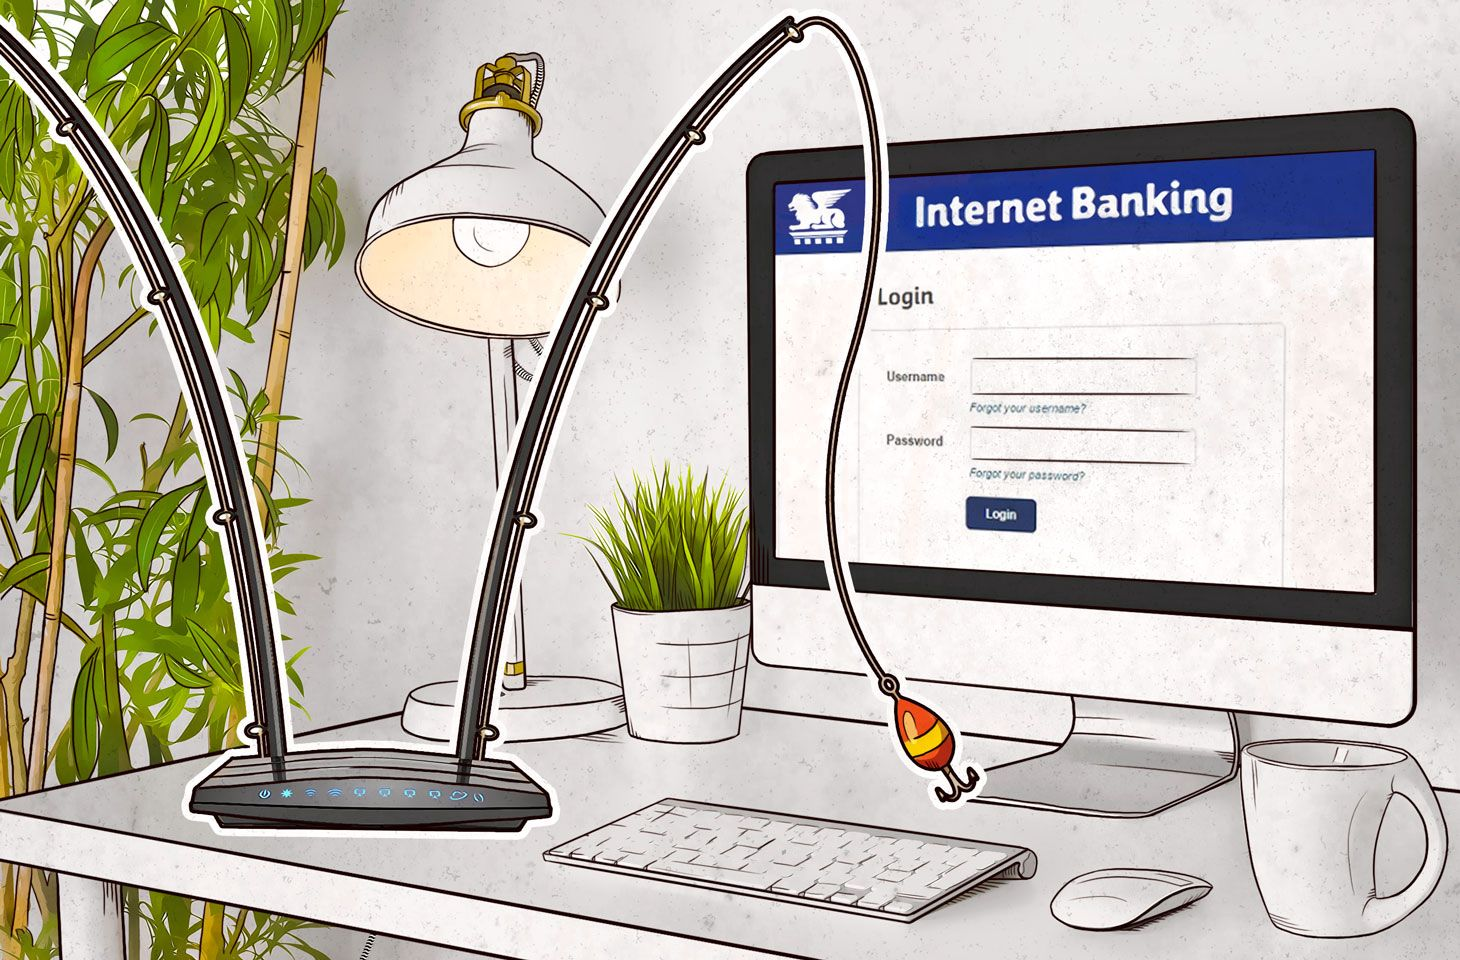 Attackers hack routers to redirect users to phishing sites